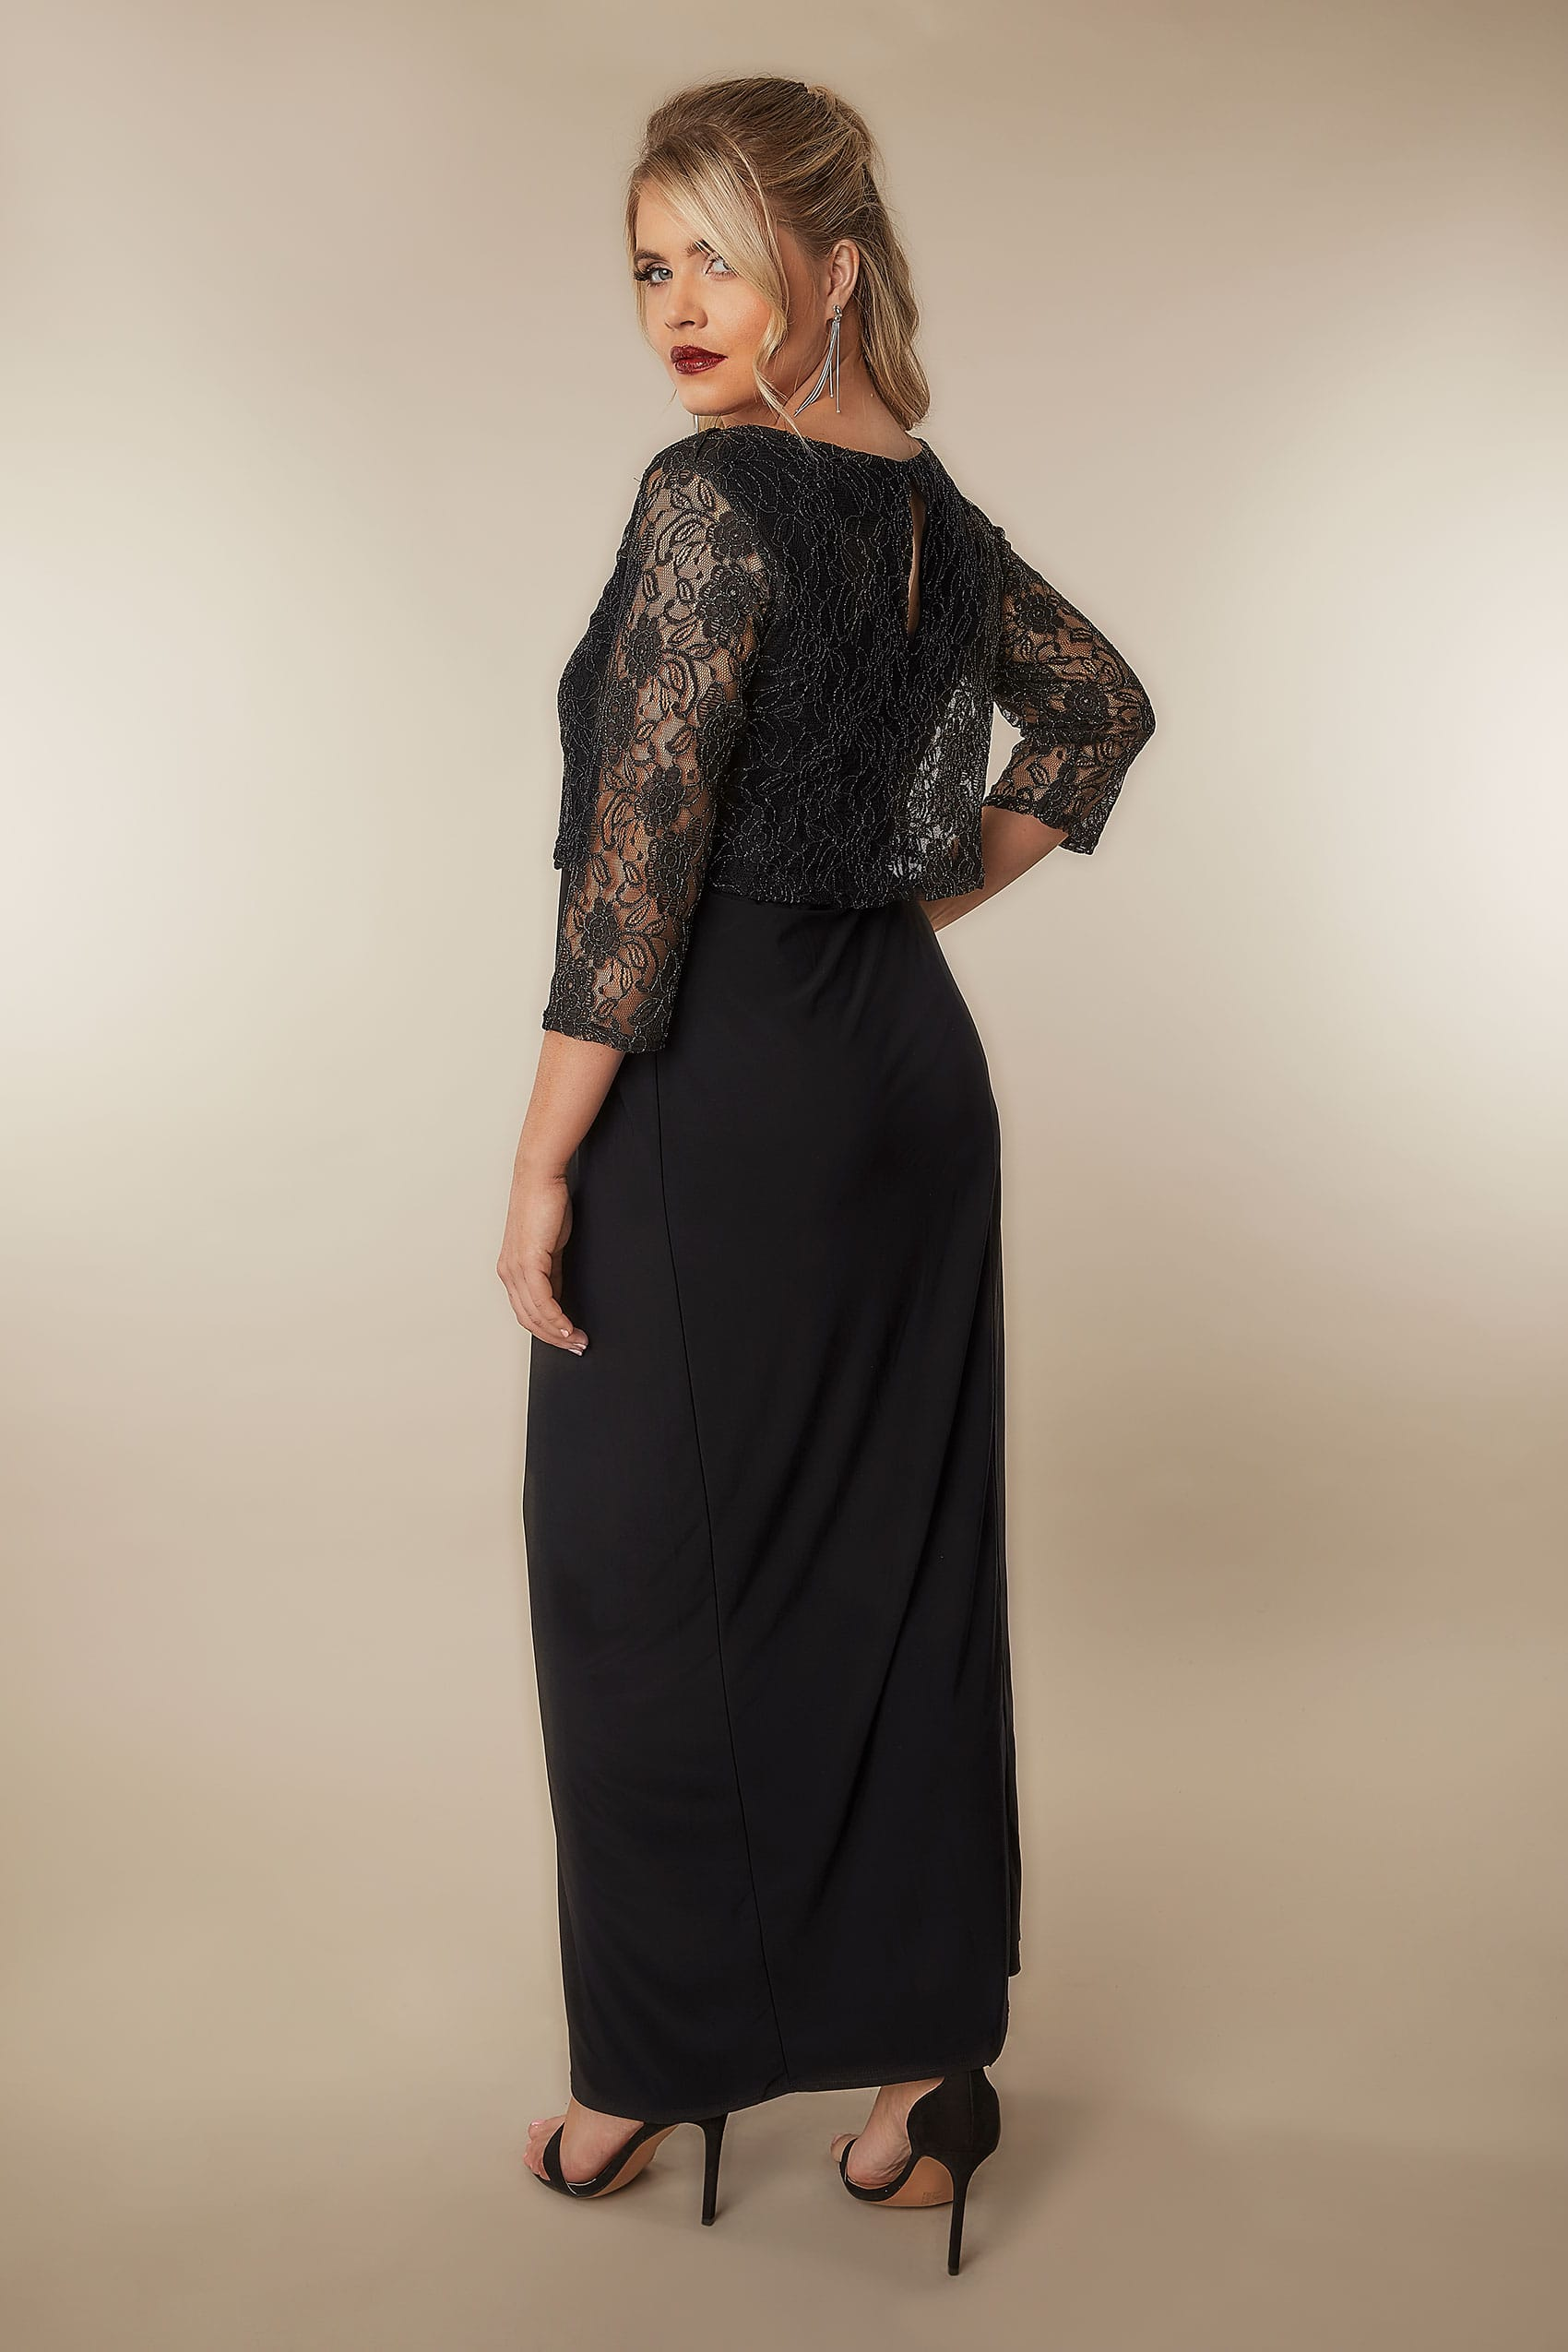 Black gold maxi lace overlay dress with long sleeves plus size 16 to 32 - Div background image ...